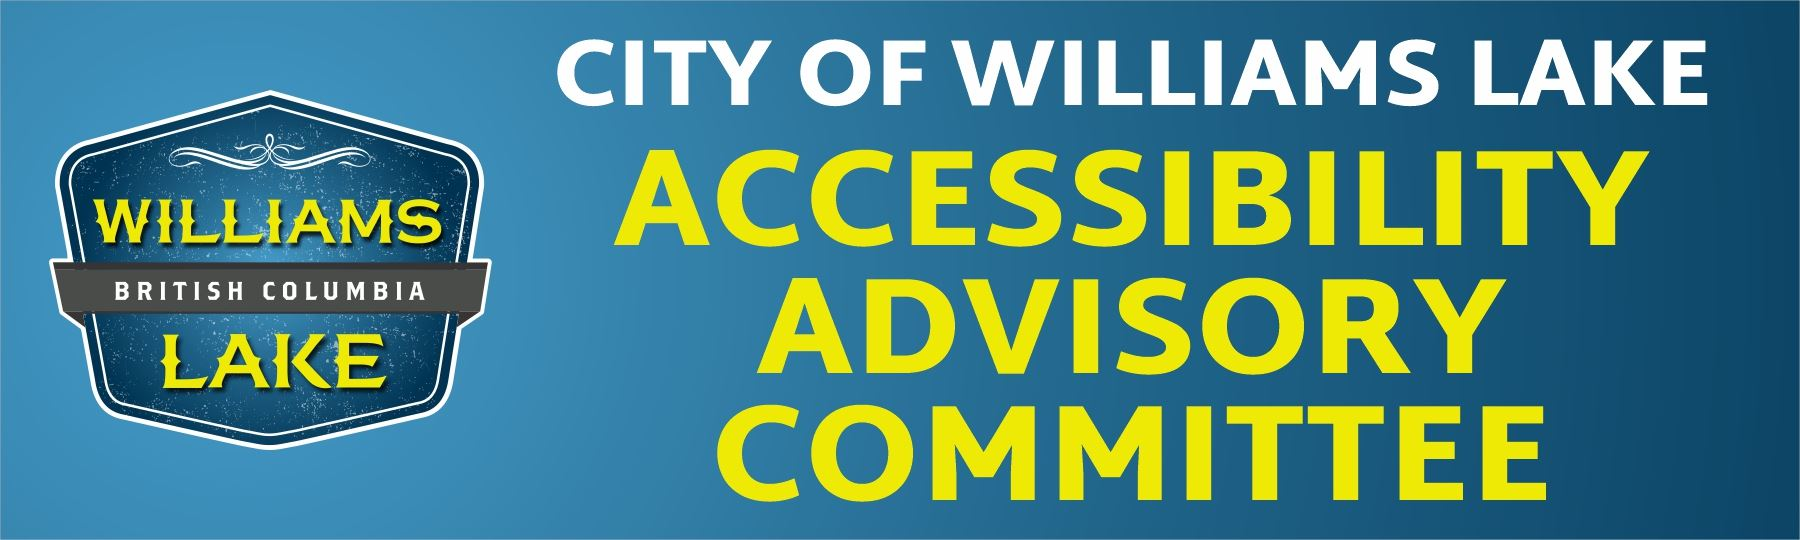 Accessibility Advisory Committee Banner